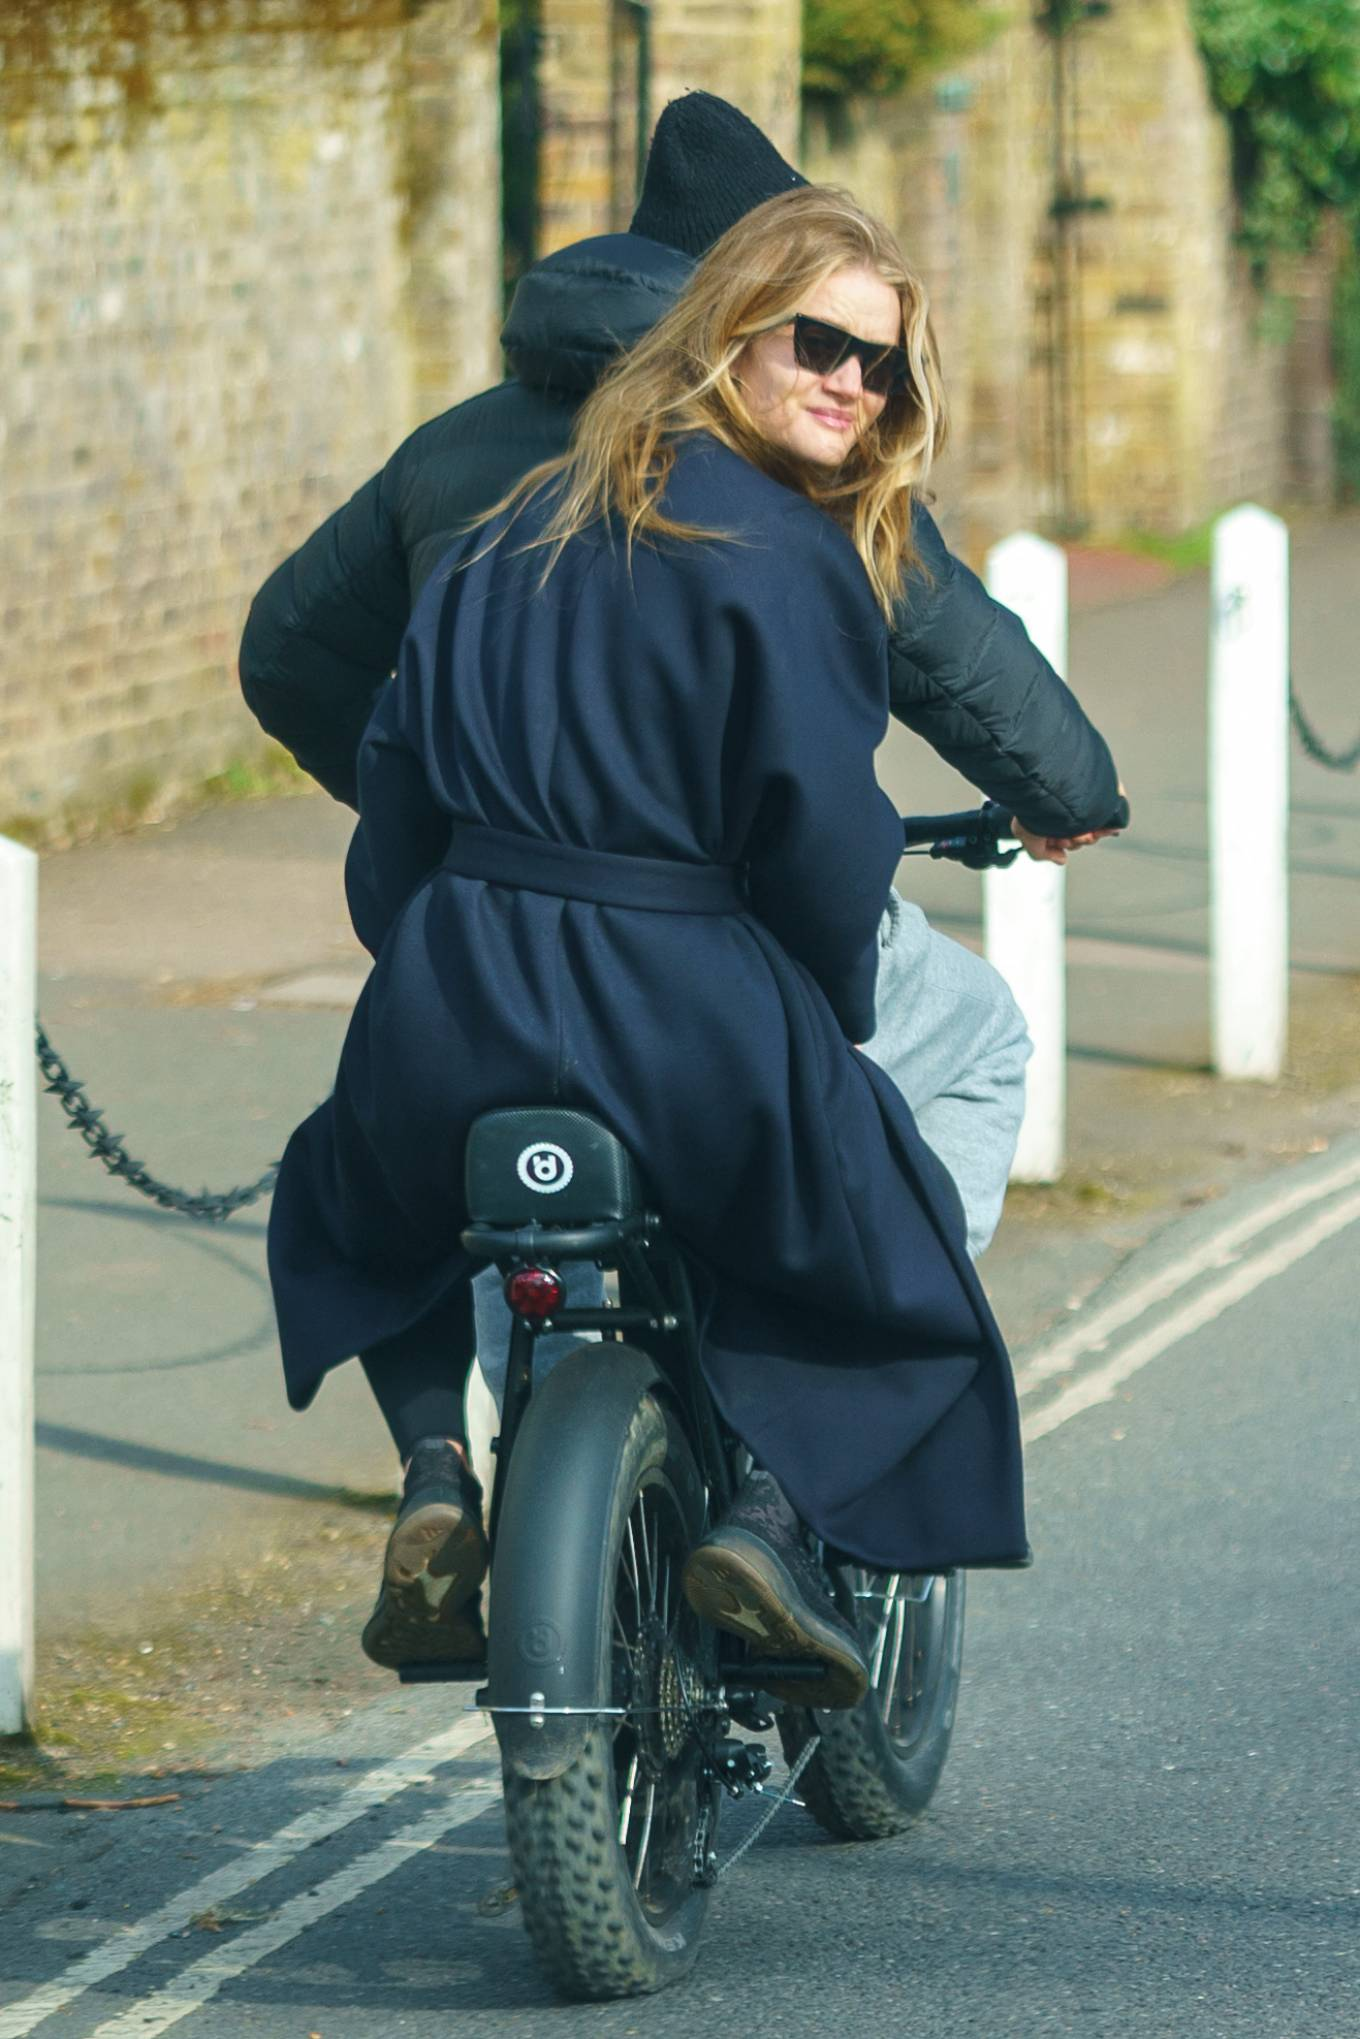 Rosie Huntington-Whiteley 2021 : Rosie Huntington-Whiteley – With Jason Statham ride electric bike in London-16